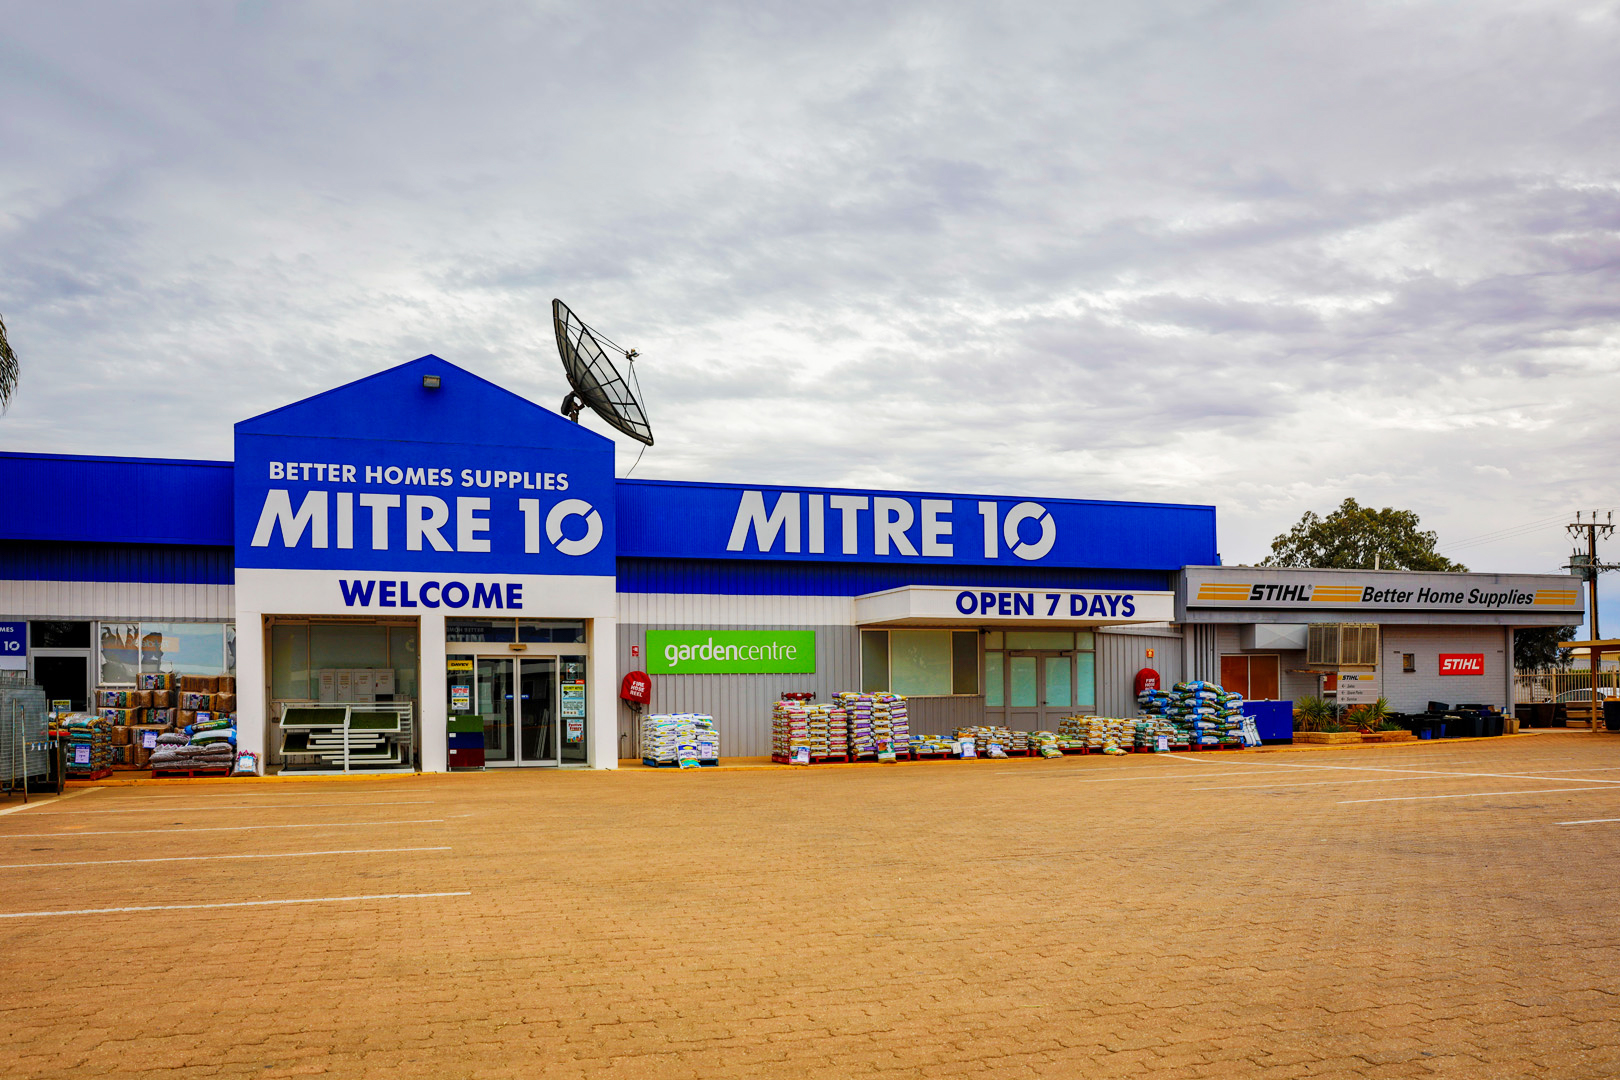 better-homes-supplies-mitre-10-port-augusta-garden-centre-slider